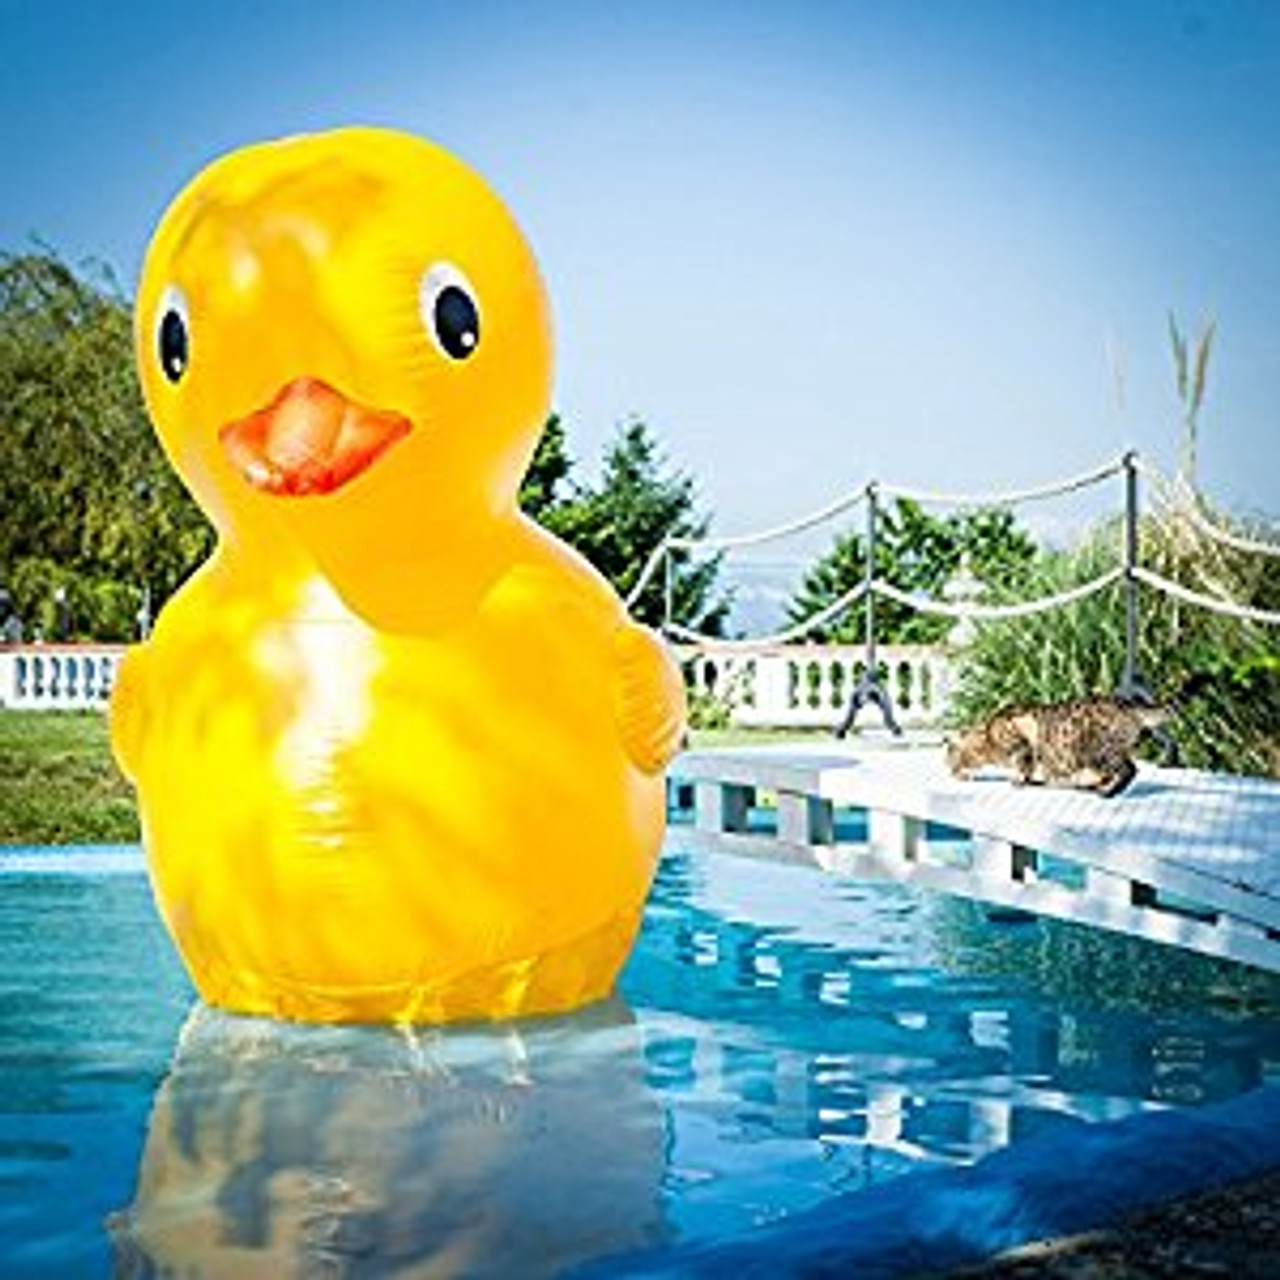 giant-gigantic-7-foot-rubber-duckie-nightclub-shop-pool-party-supplies-inflatable-float-xxl-4